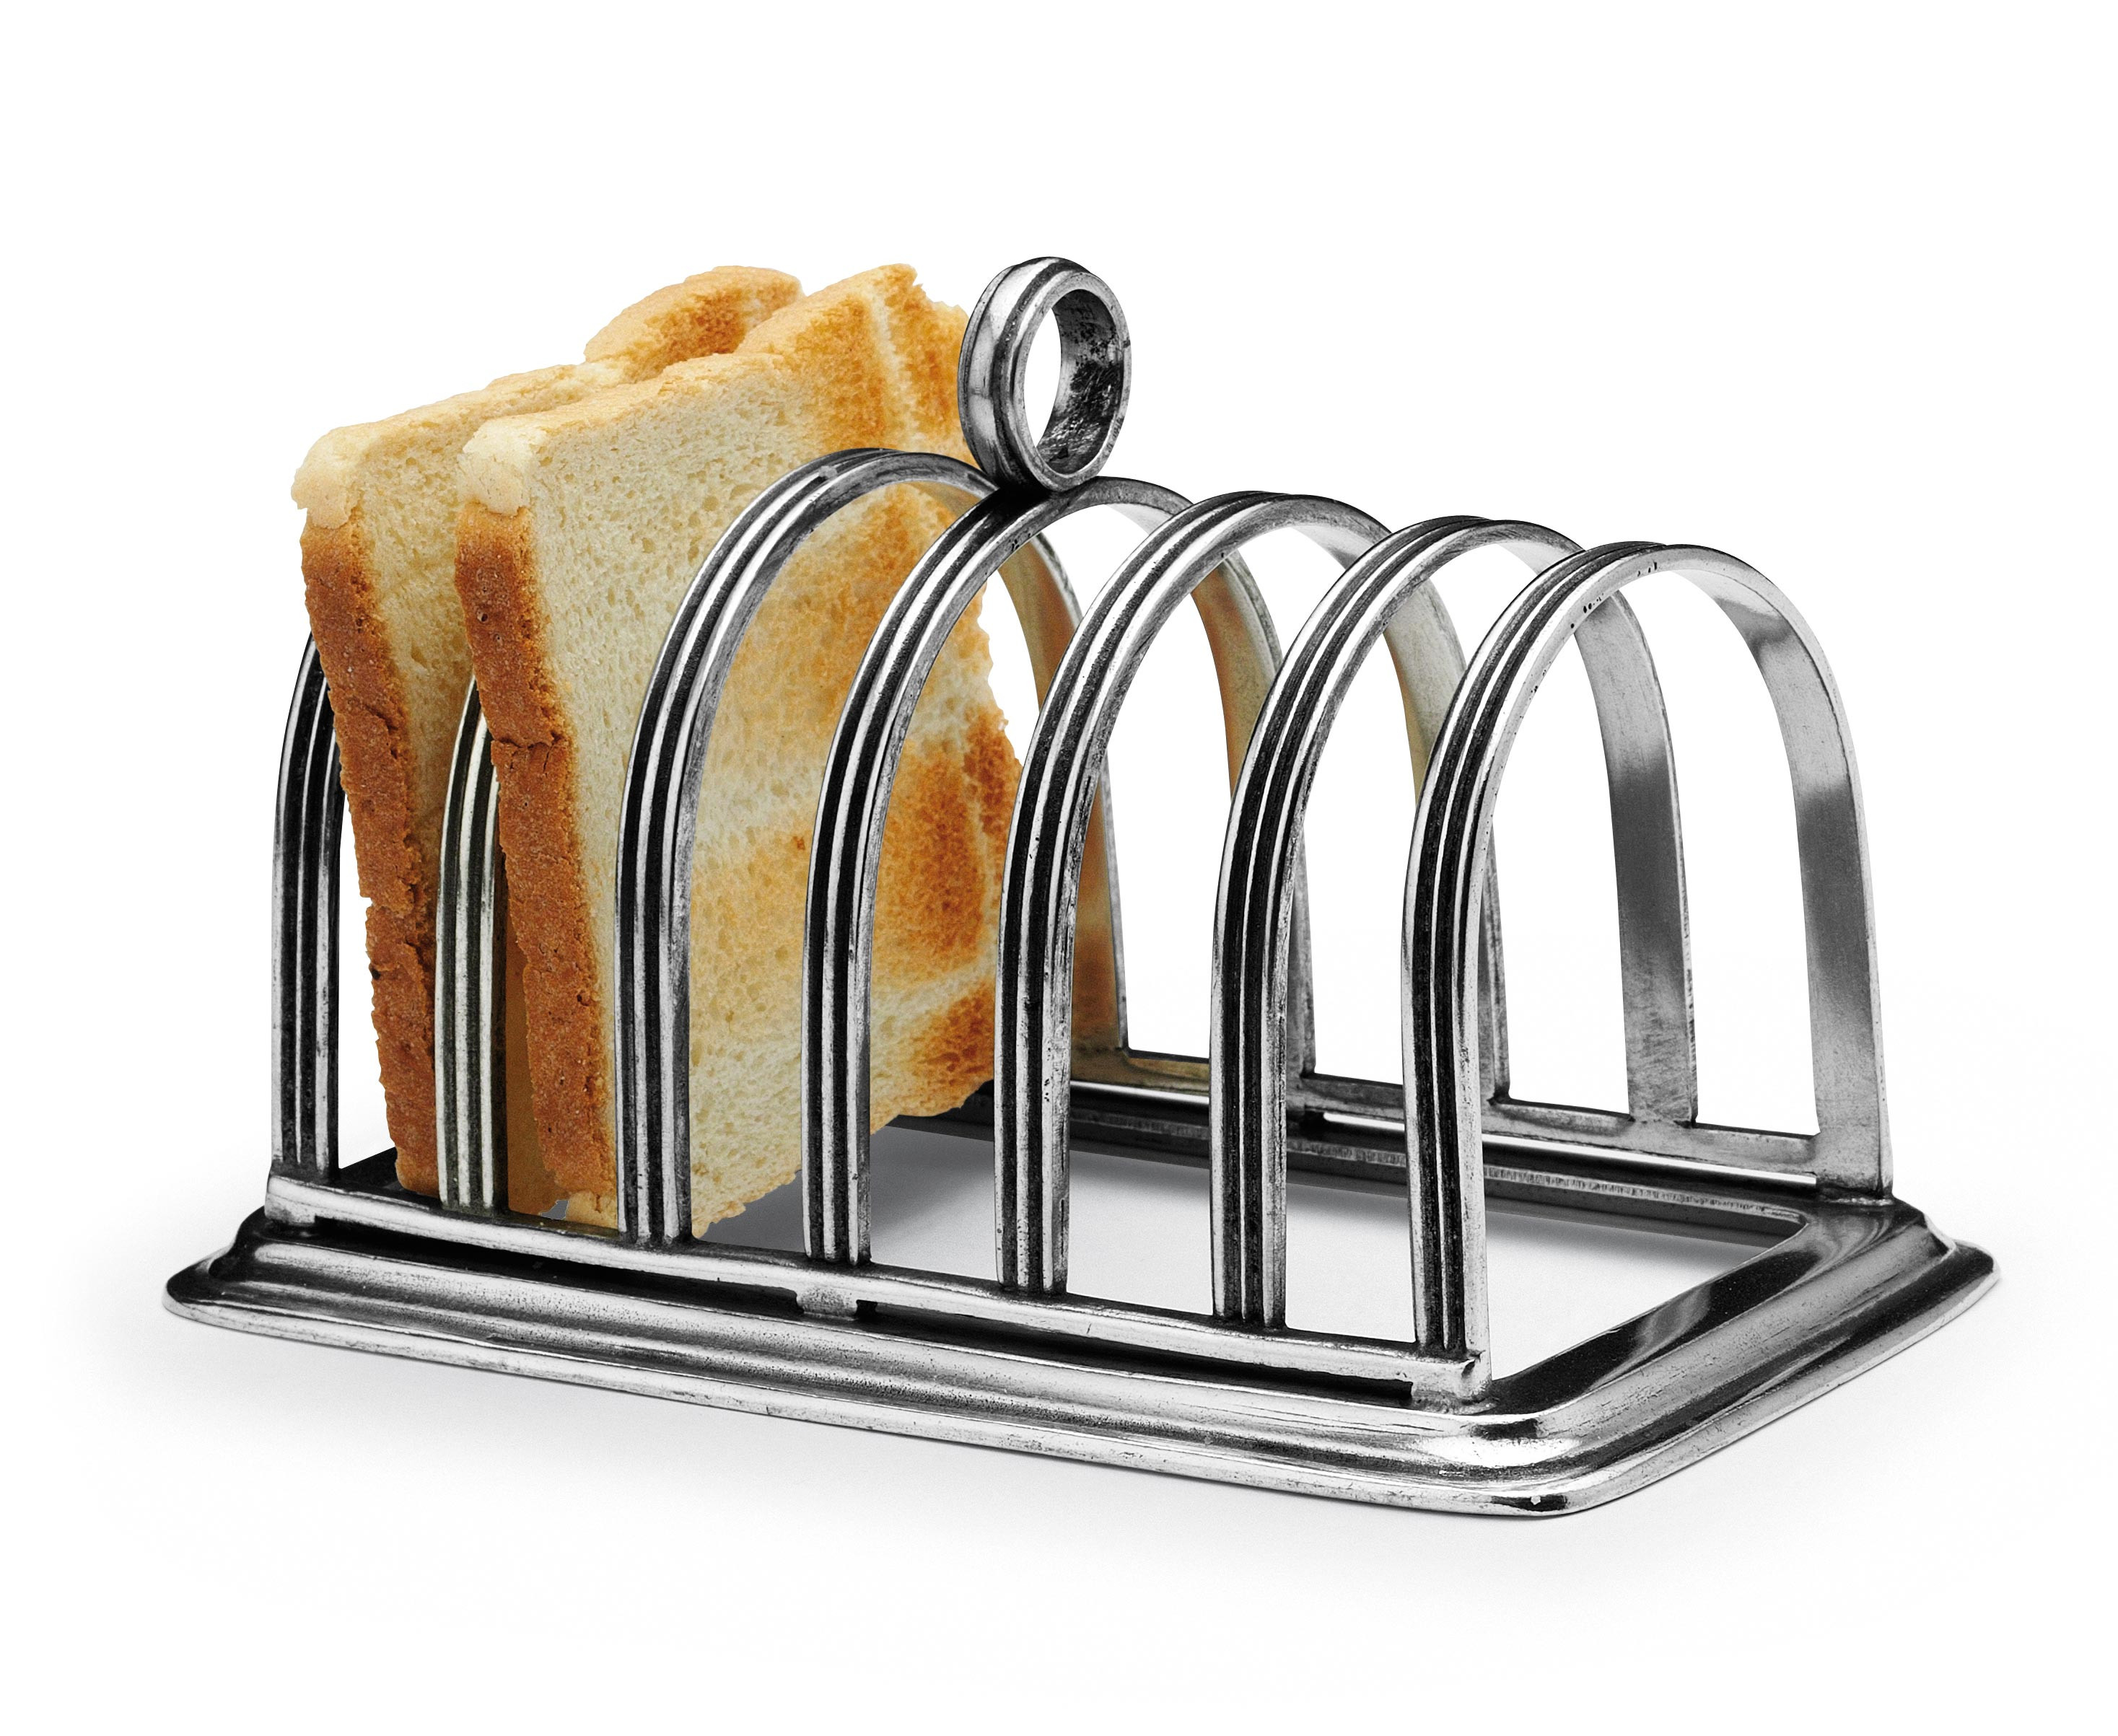 Pewter Toast Rack Cm 9x16x12 Peltro Pewter Shop Online